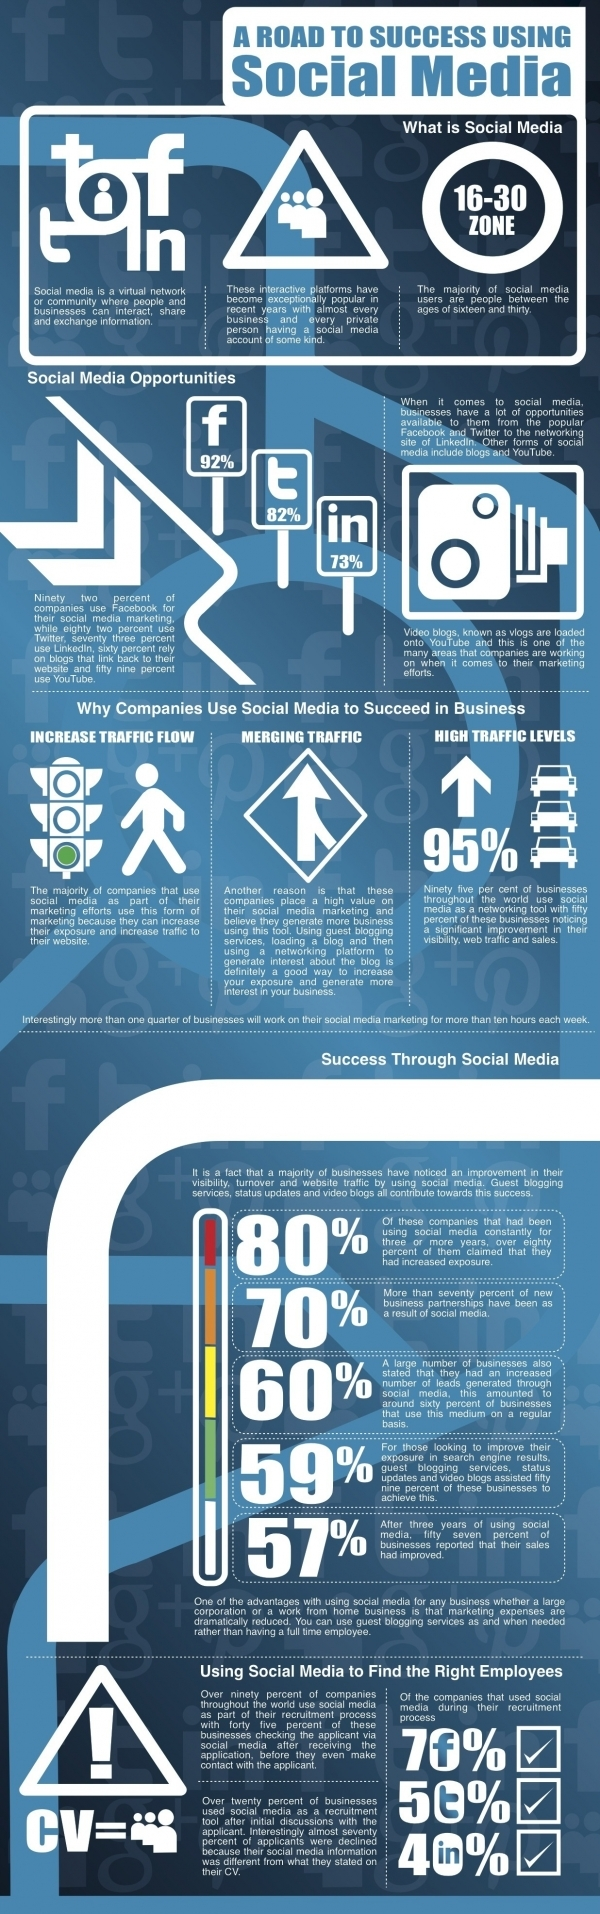 A Road To Success Using Social Media | AllTwitter